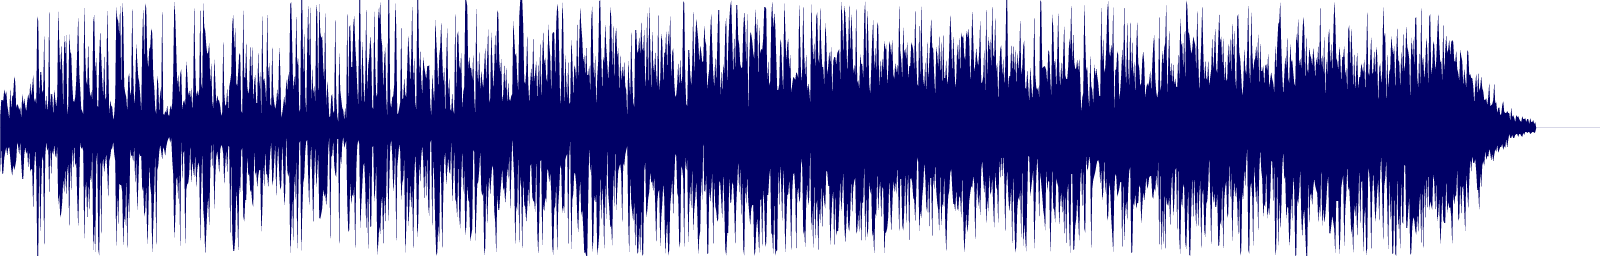 waveform of track #137311